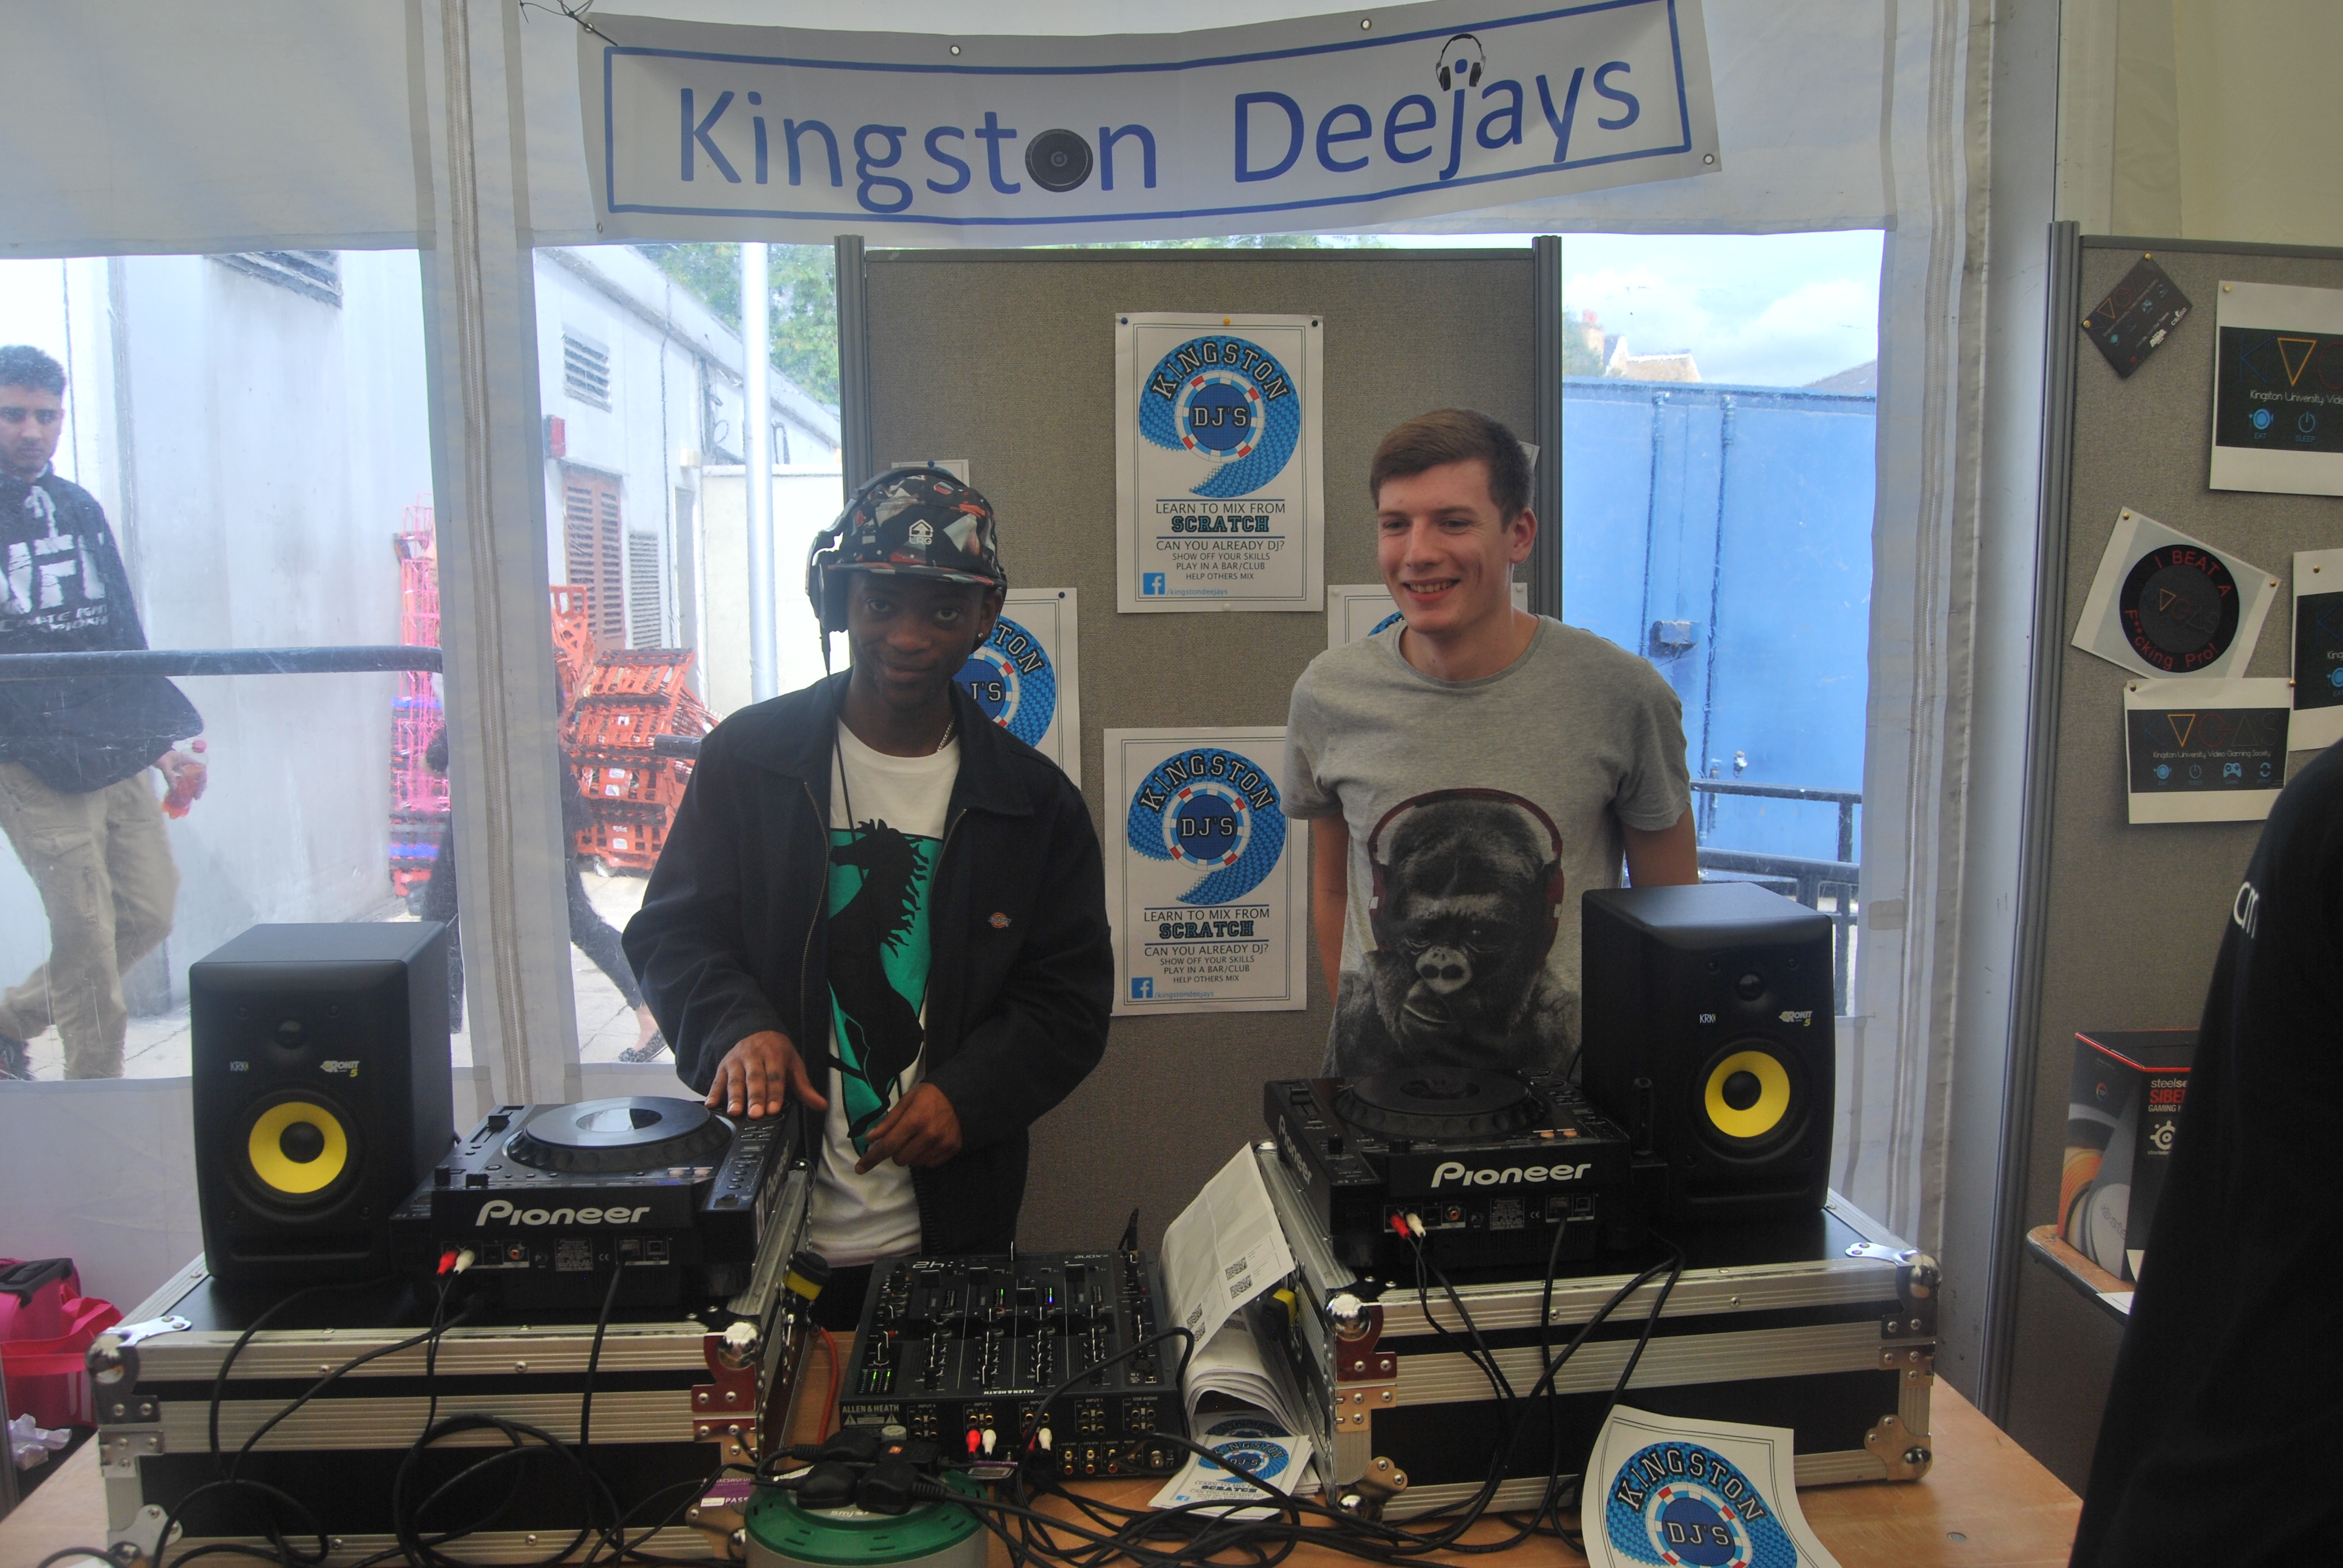 Kingston Deejays kept everyone entertained